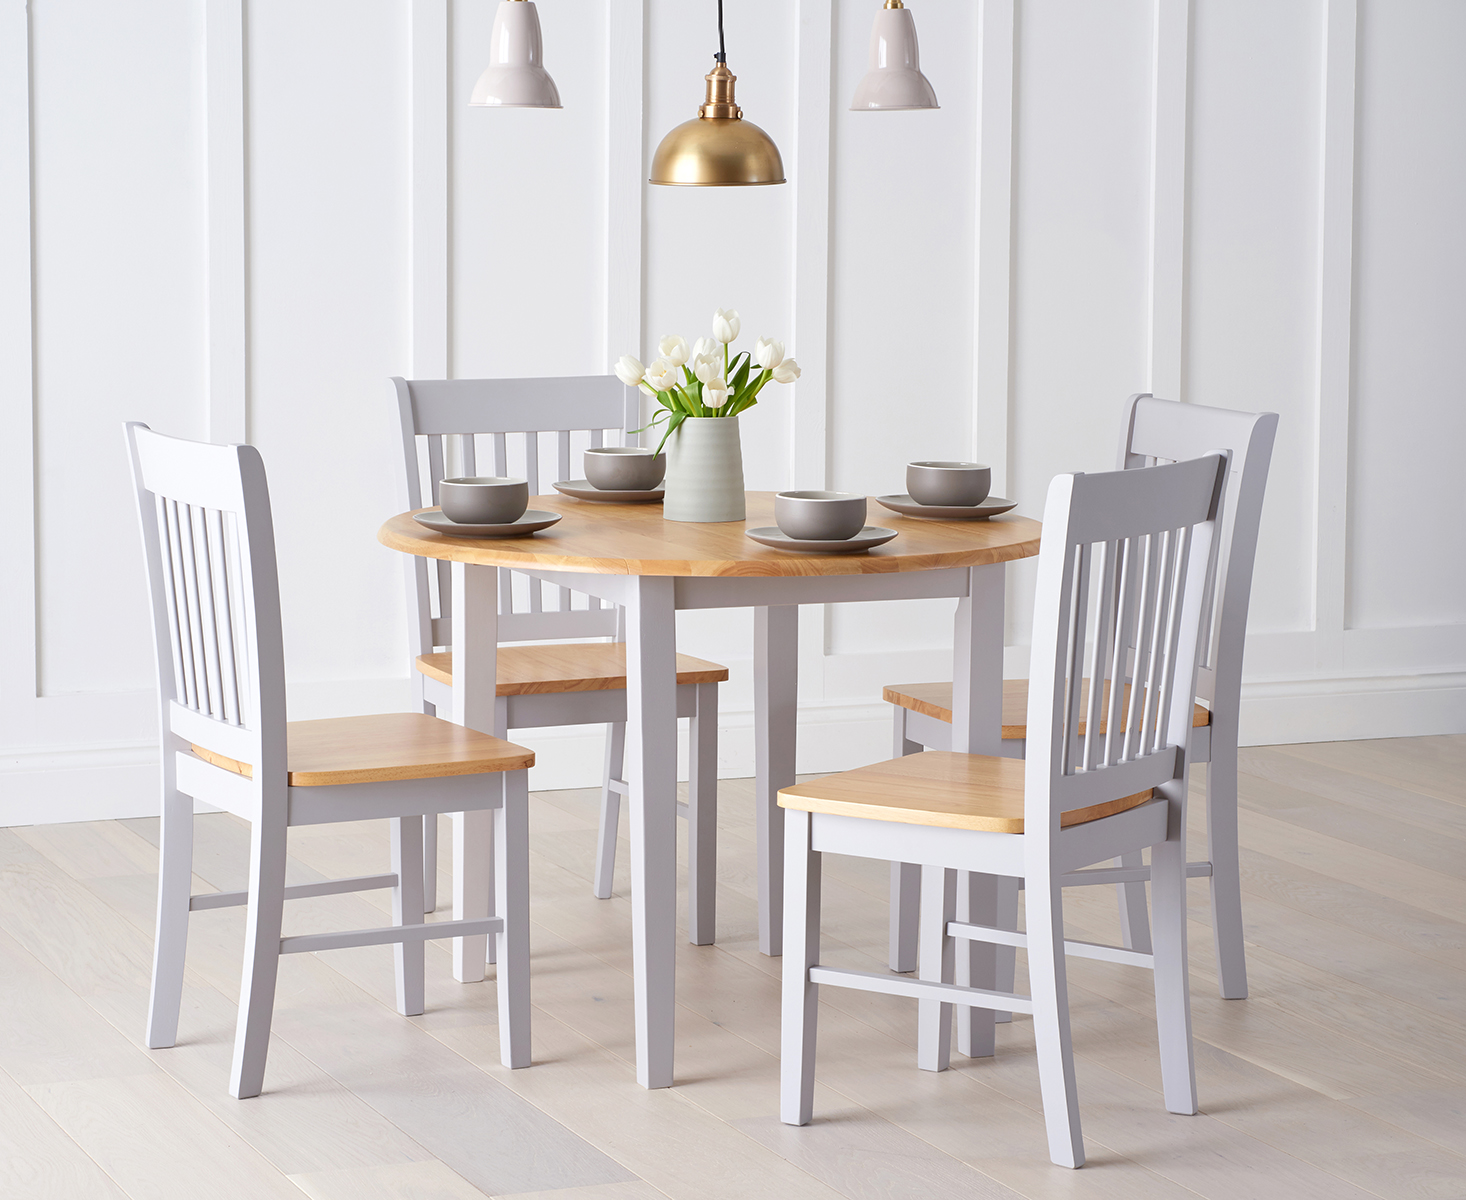 Genoa 100cm Oak and Grey Drop Leaf Extending Dining Table Set with Chairs